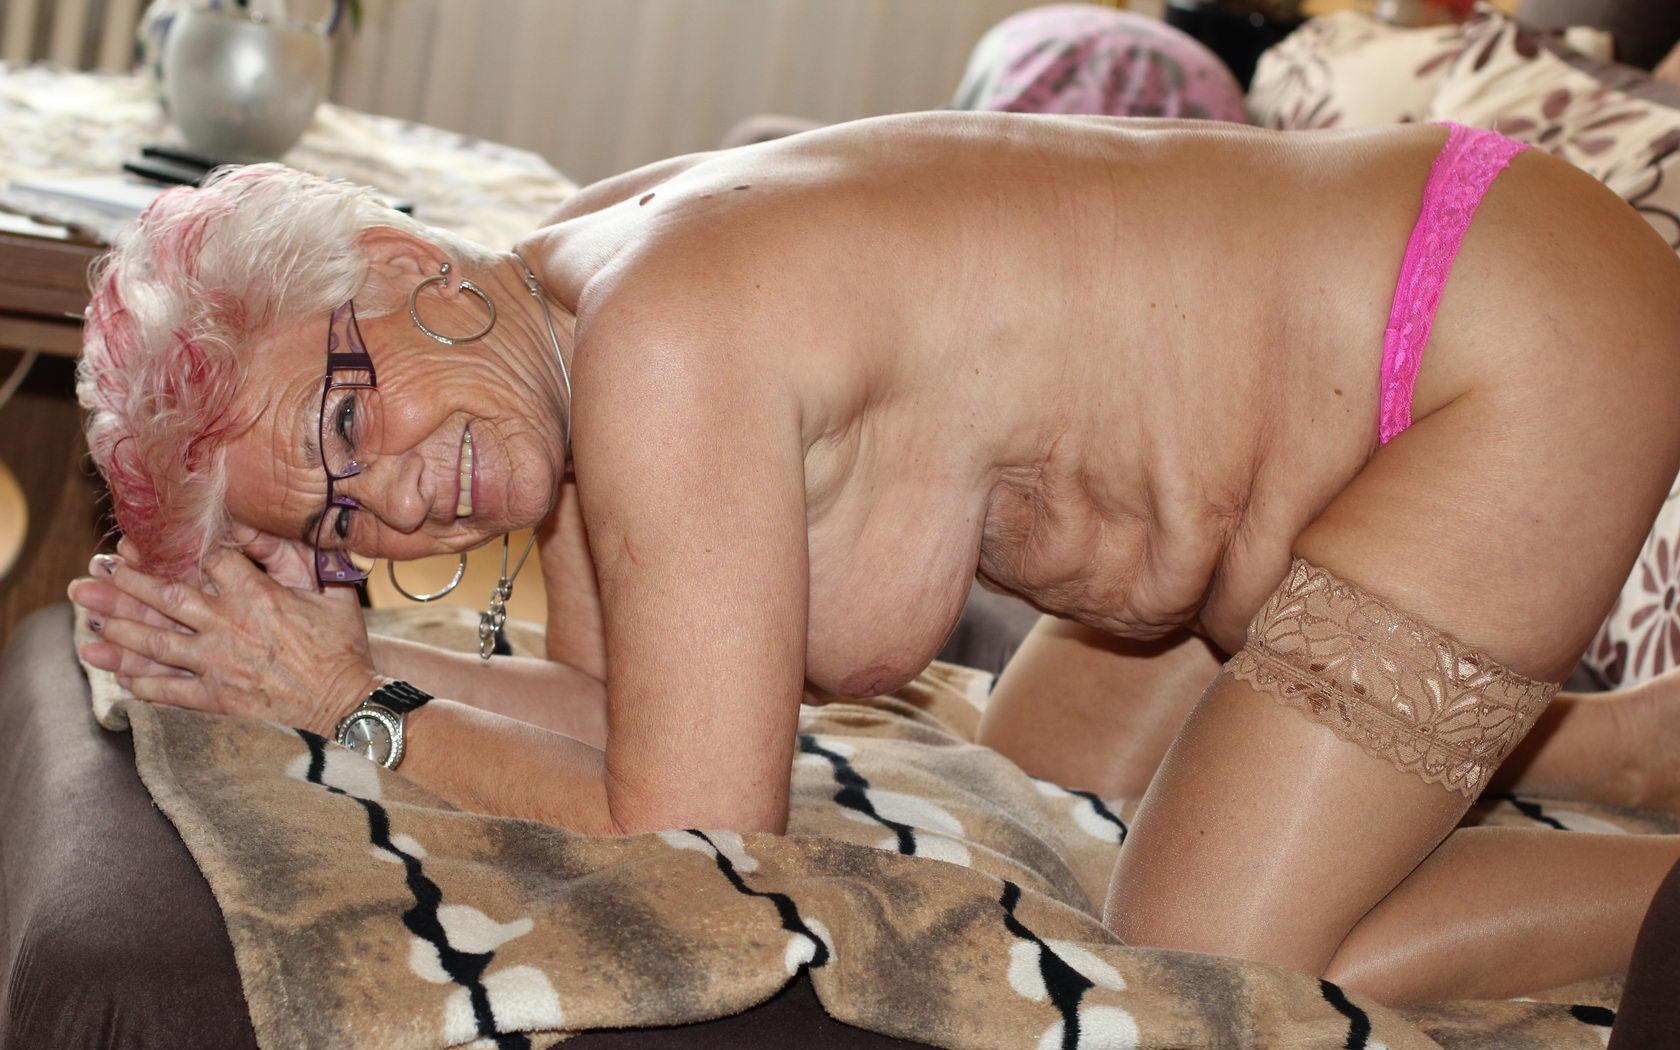 lusty granny thinks all the day about with a nice upskirt view